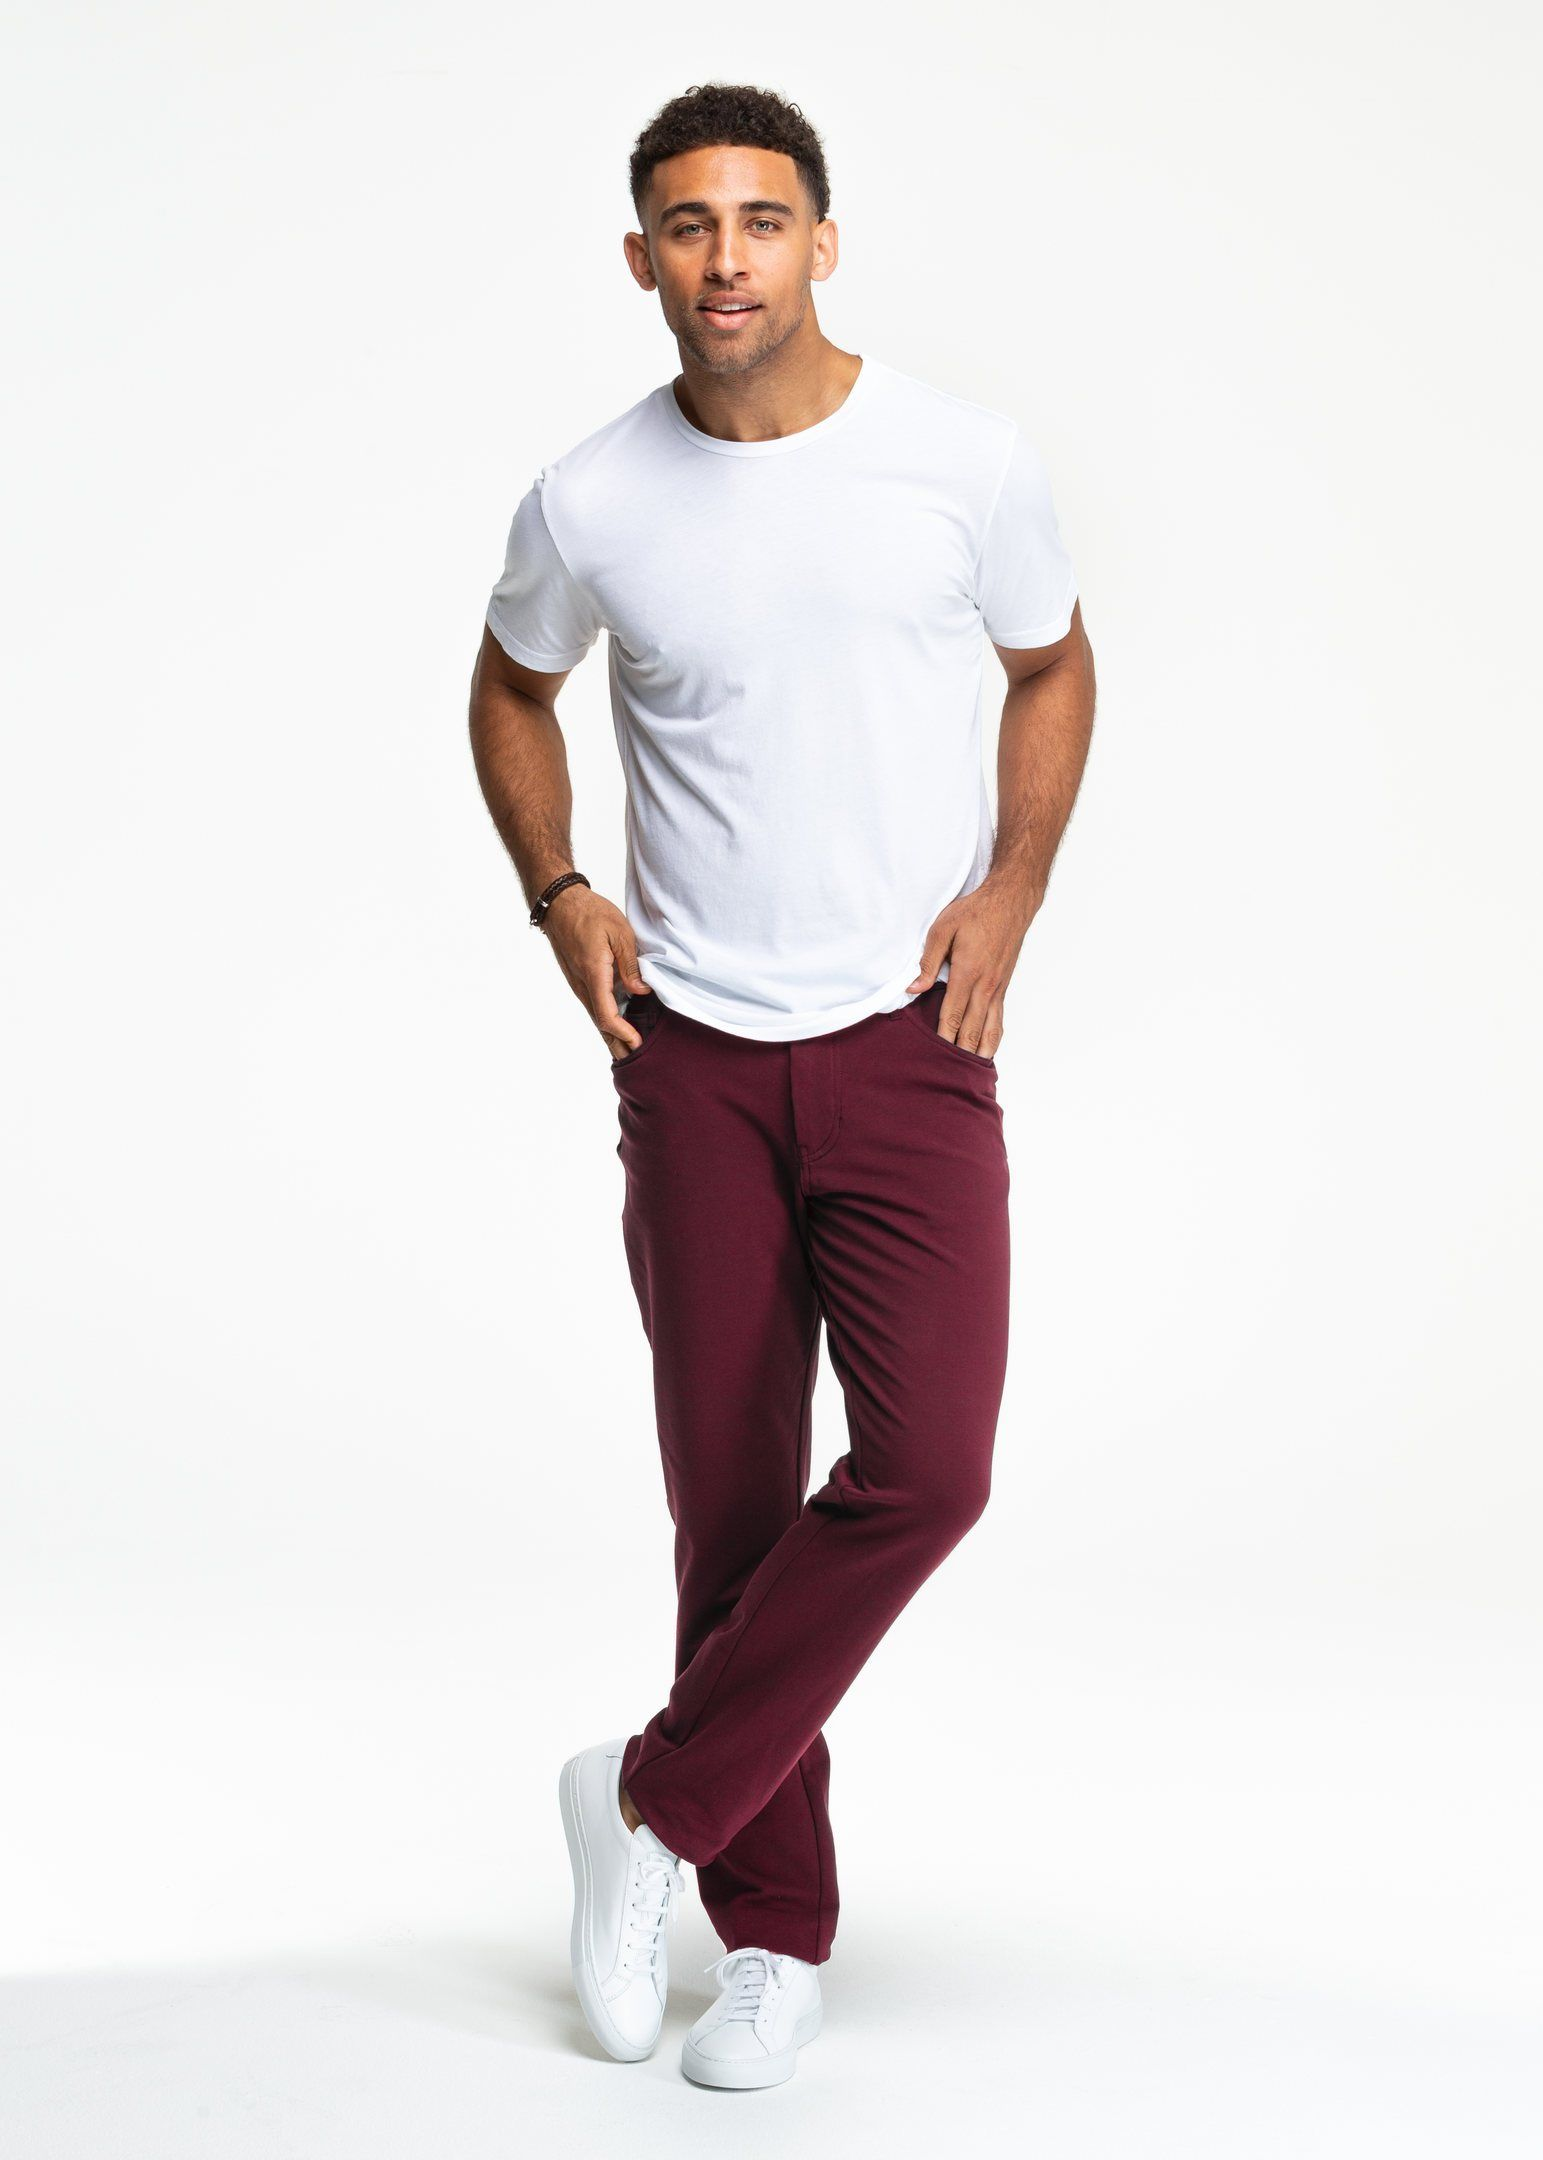 5fce929613 What Colour Shirt To Wear With Maroon Pants | Saddha